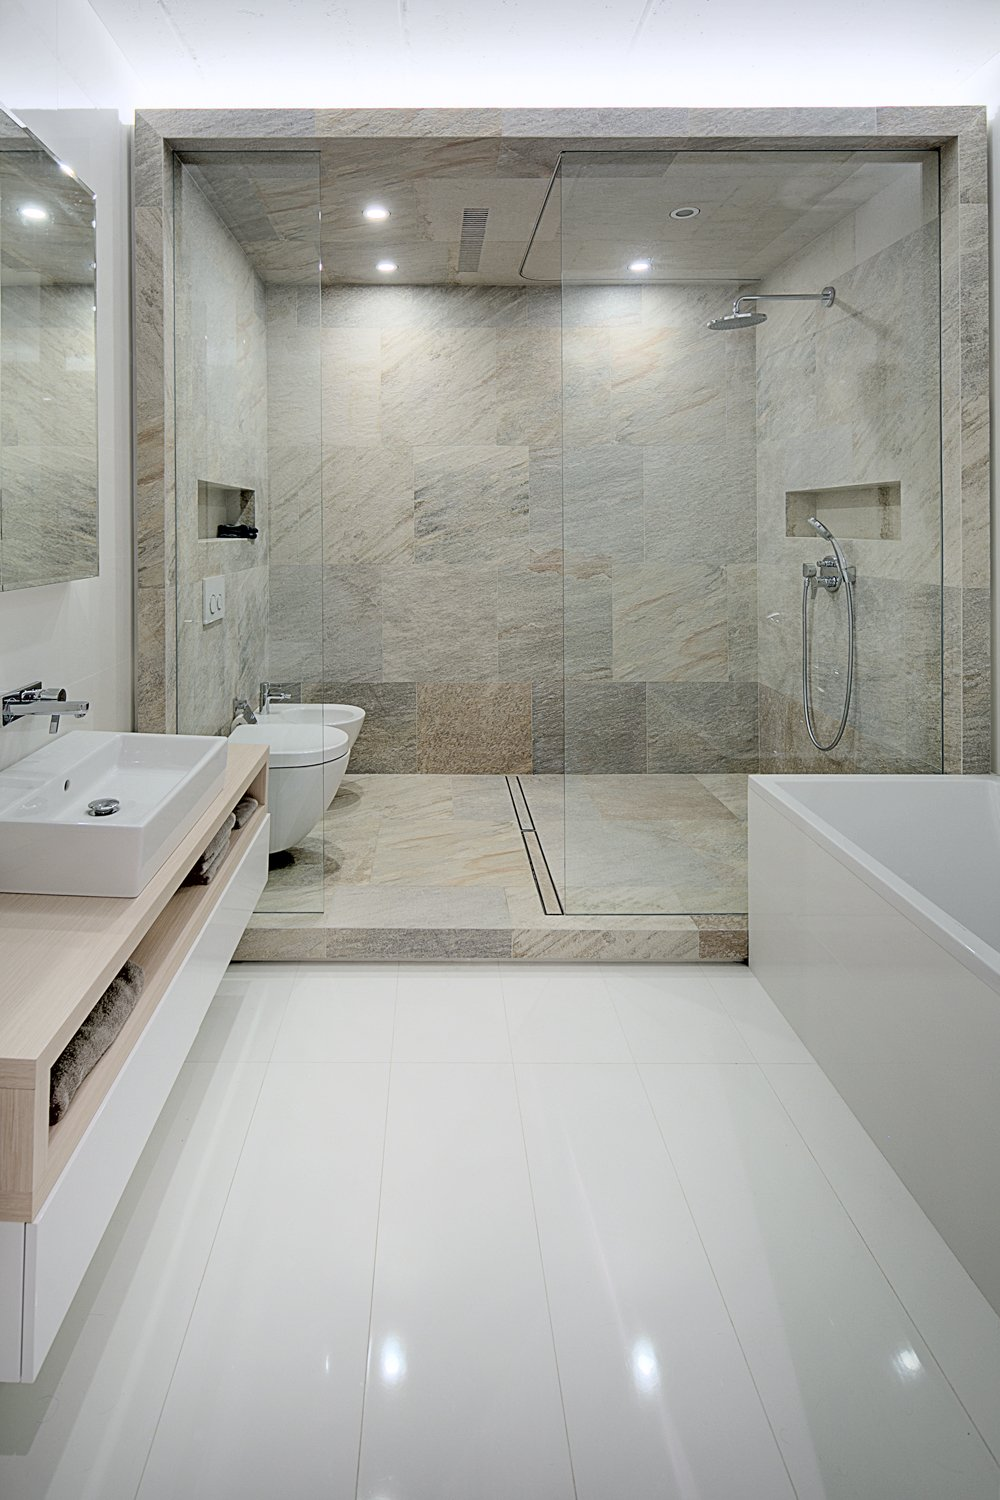 Huge Shower - A modern home with personality of perfect for a fun couple